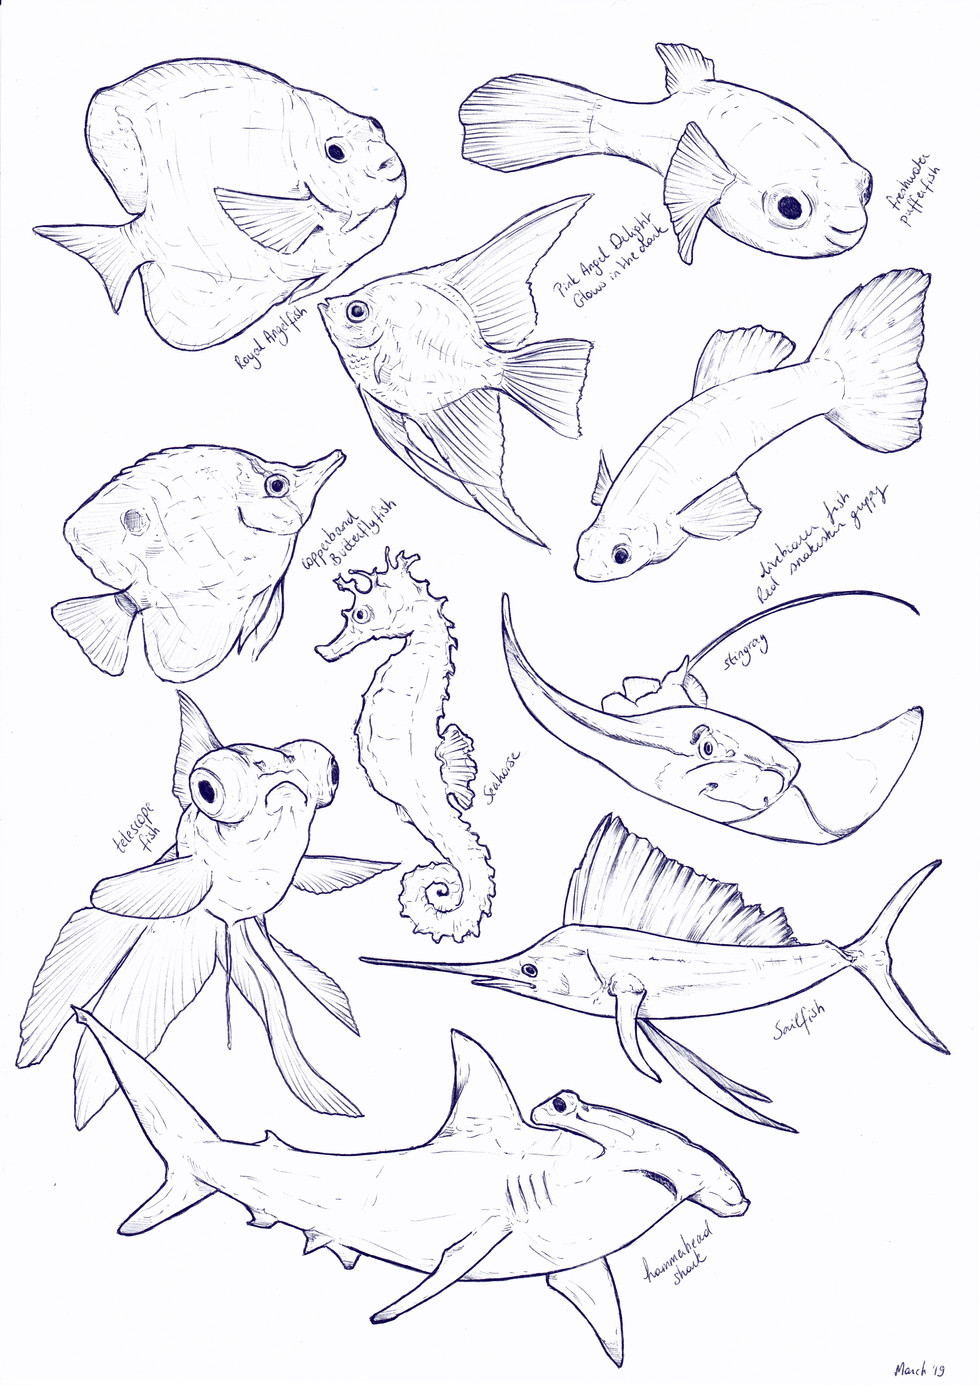 Fish sketches